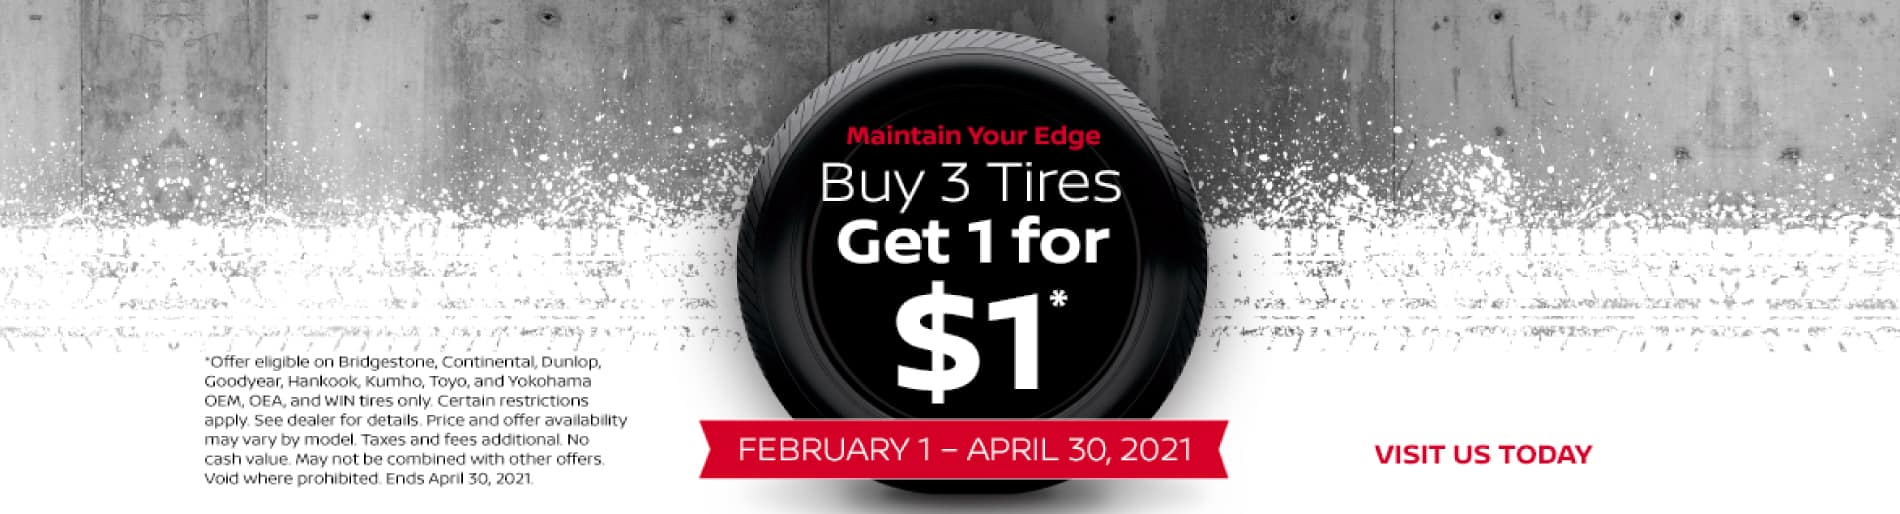 Buy 3 Tires Get 1 for $1 - Visit Us Today